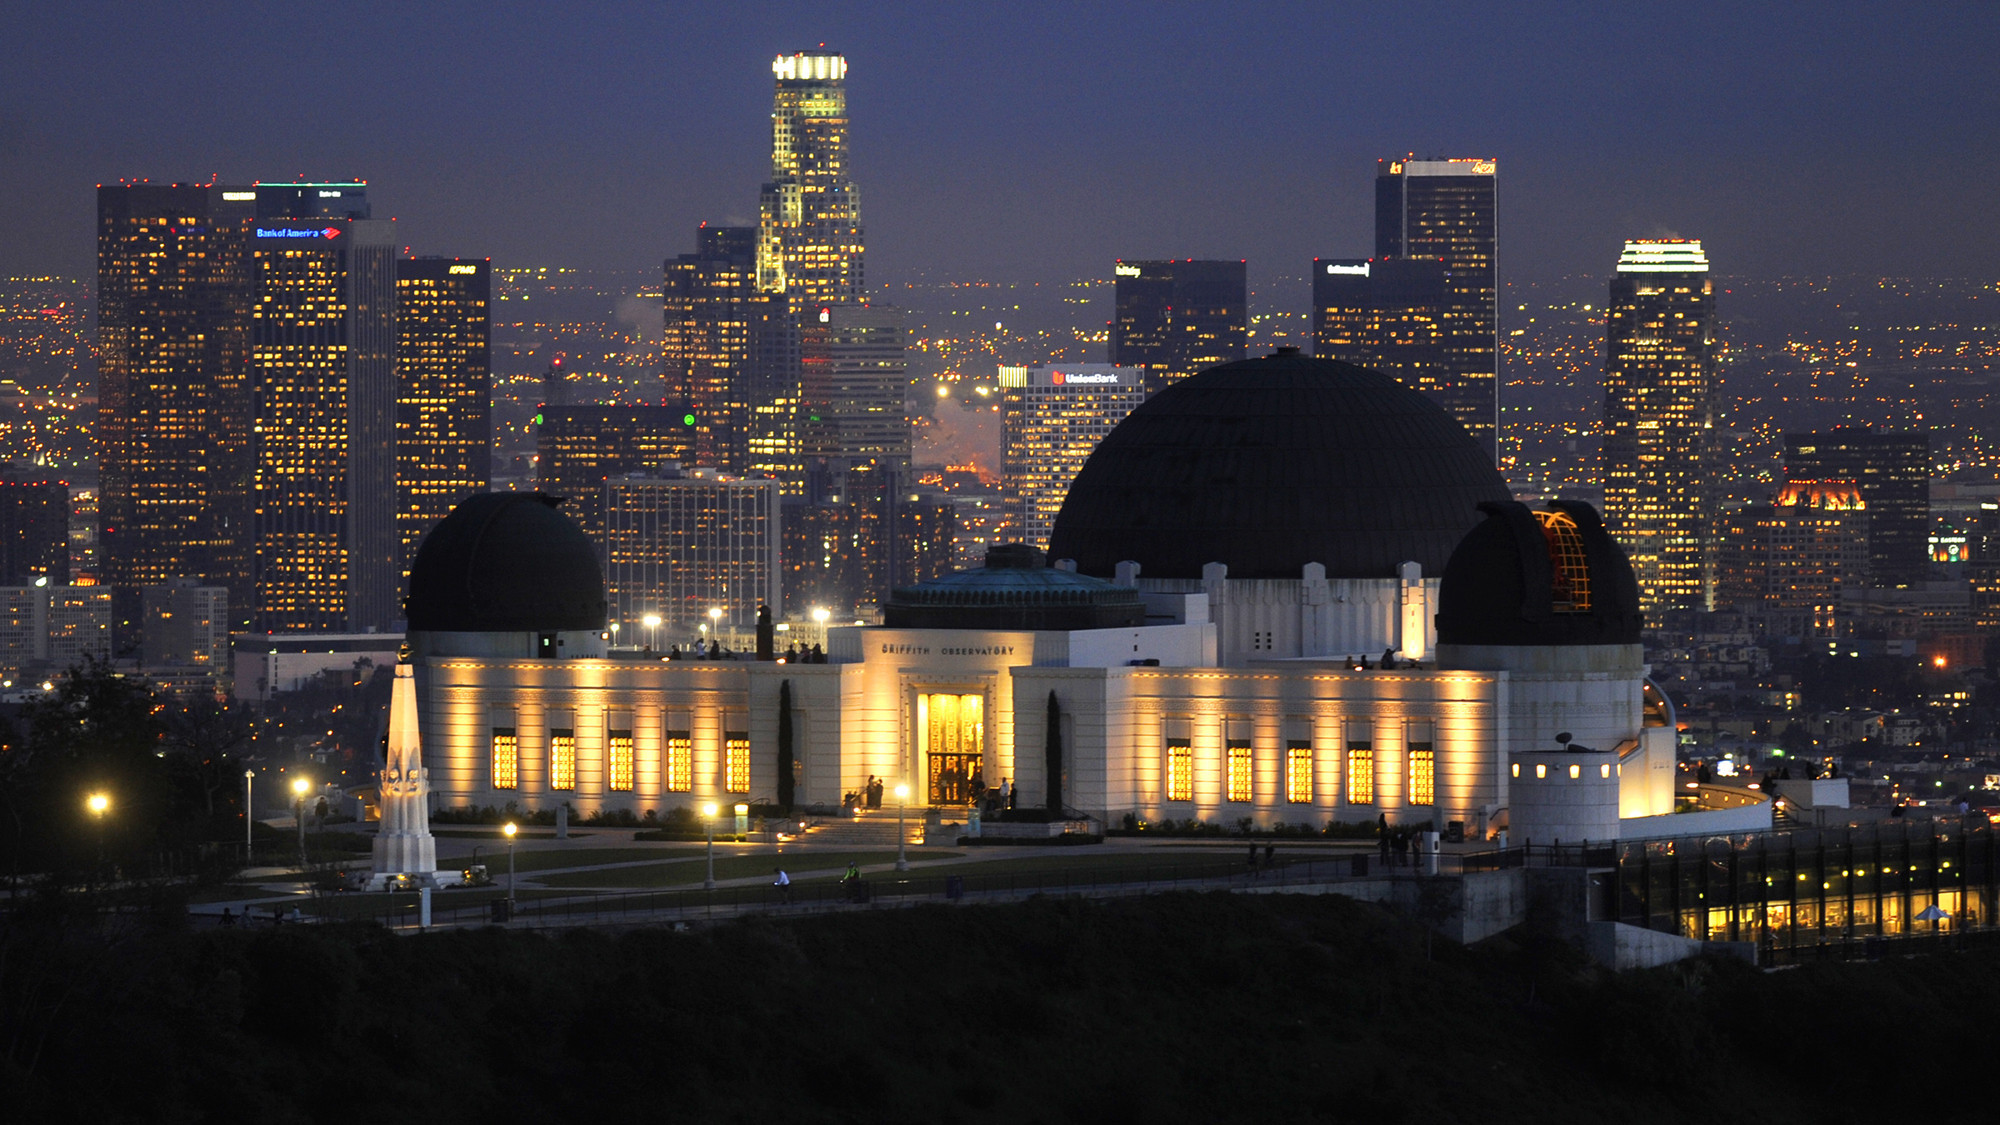 la-me-griffith-observatory-celebrates-80th-anniversary-20150514-pictures